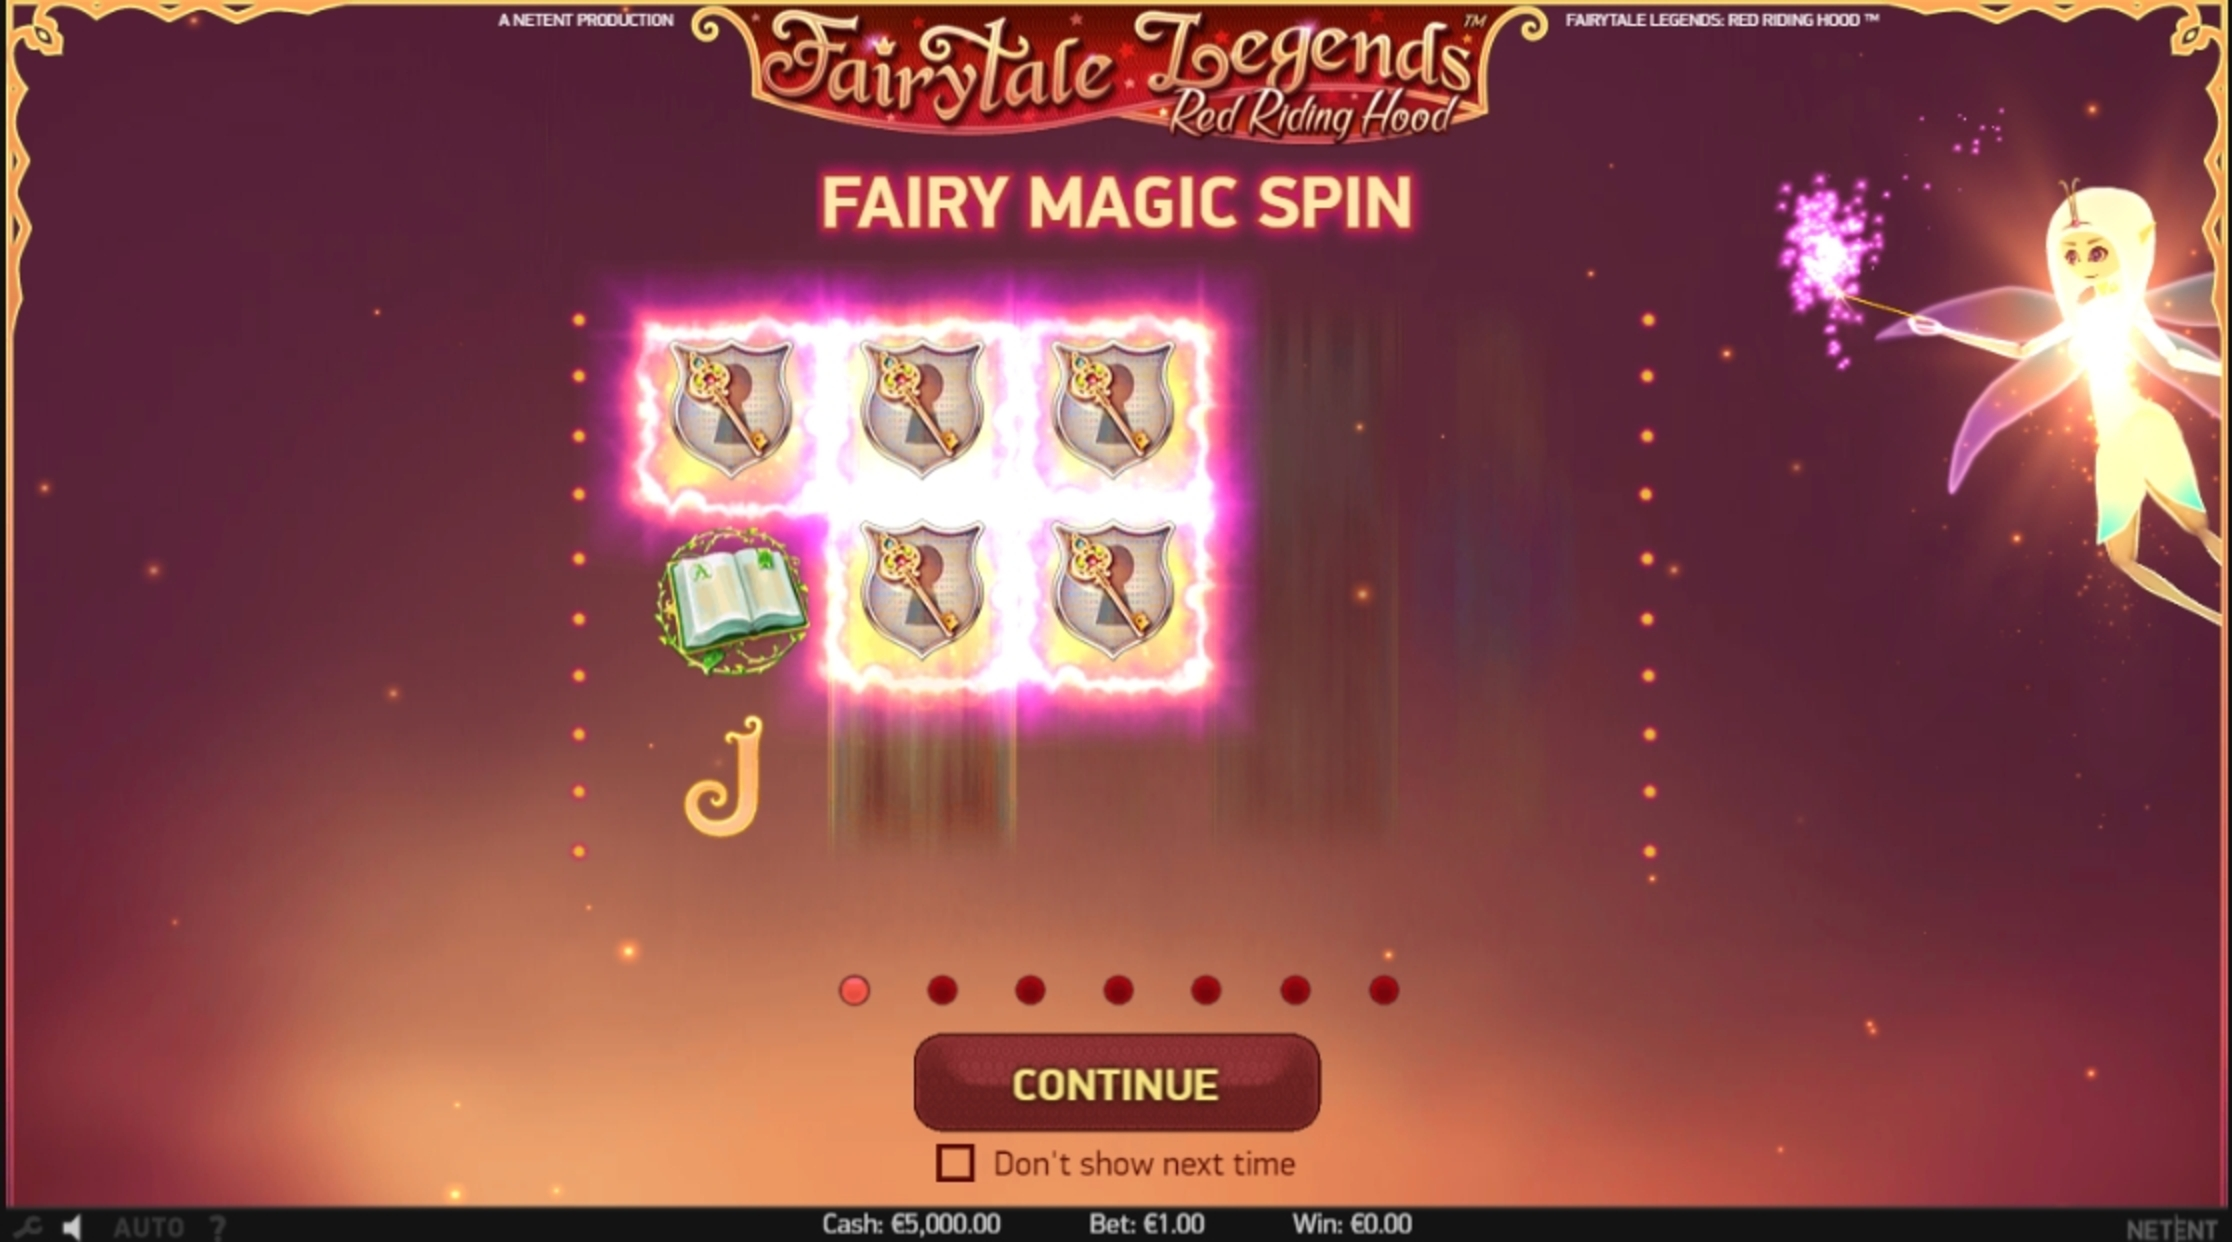 Play Fairytale Legends: Red Riding Hood Free Casino Slot Game by NetEnt